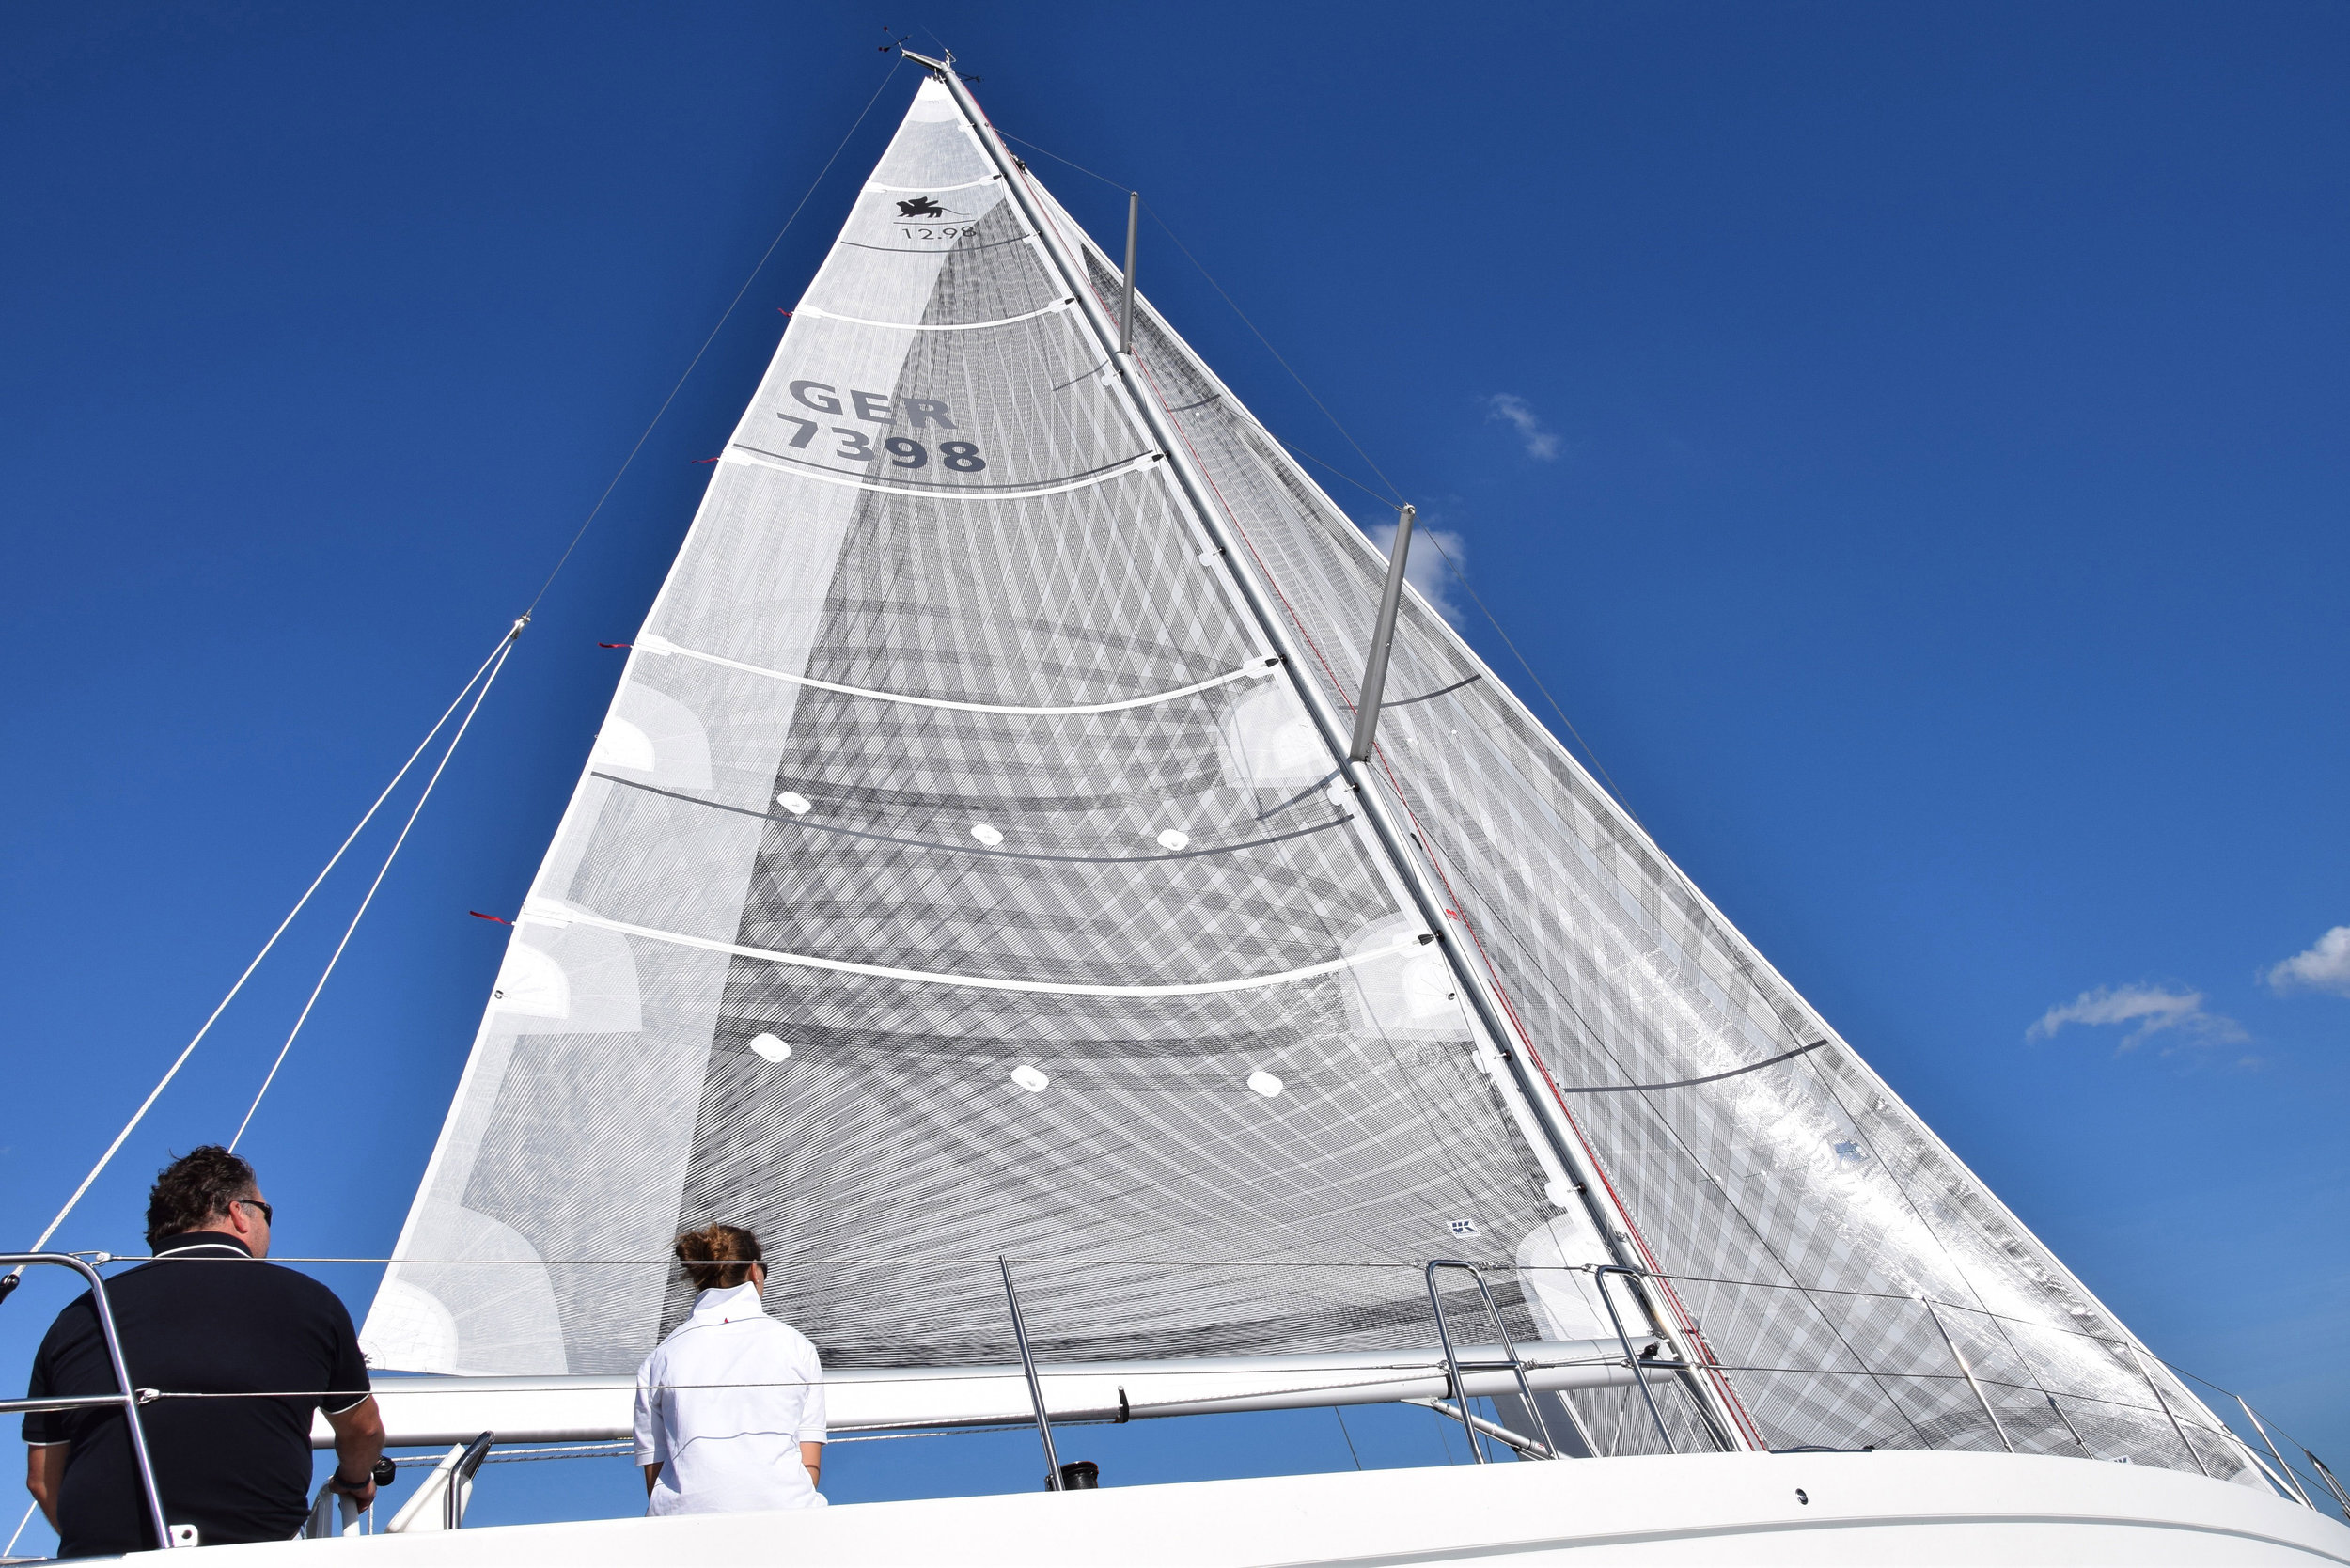 Carbon X-Drive on a polyester/mlyar base laminate that has a taffeta layer (light-weight finely-woven polyester cloth) on the side opposite the carbon tapes. This mainsail has a one meter wide strip of taffeta over the mainsail leech for extra durability.